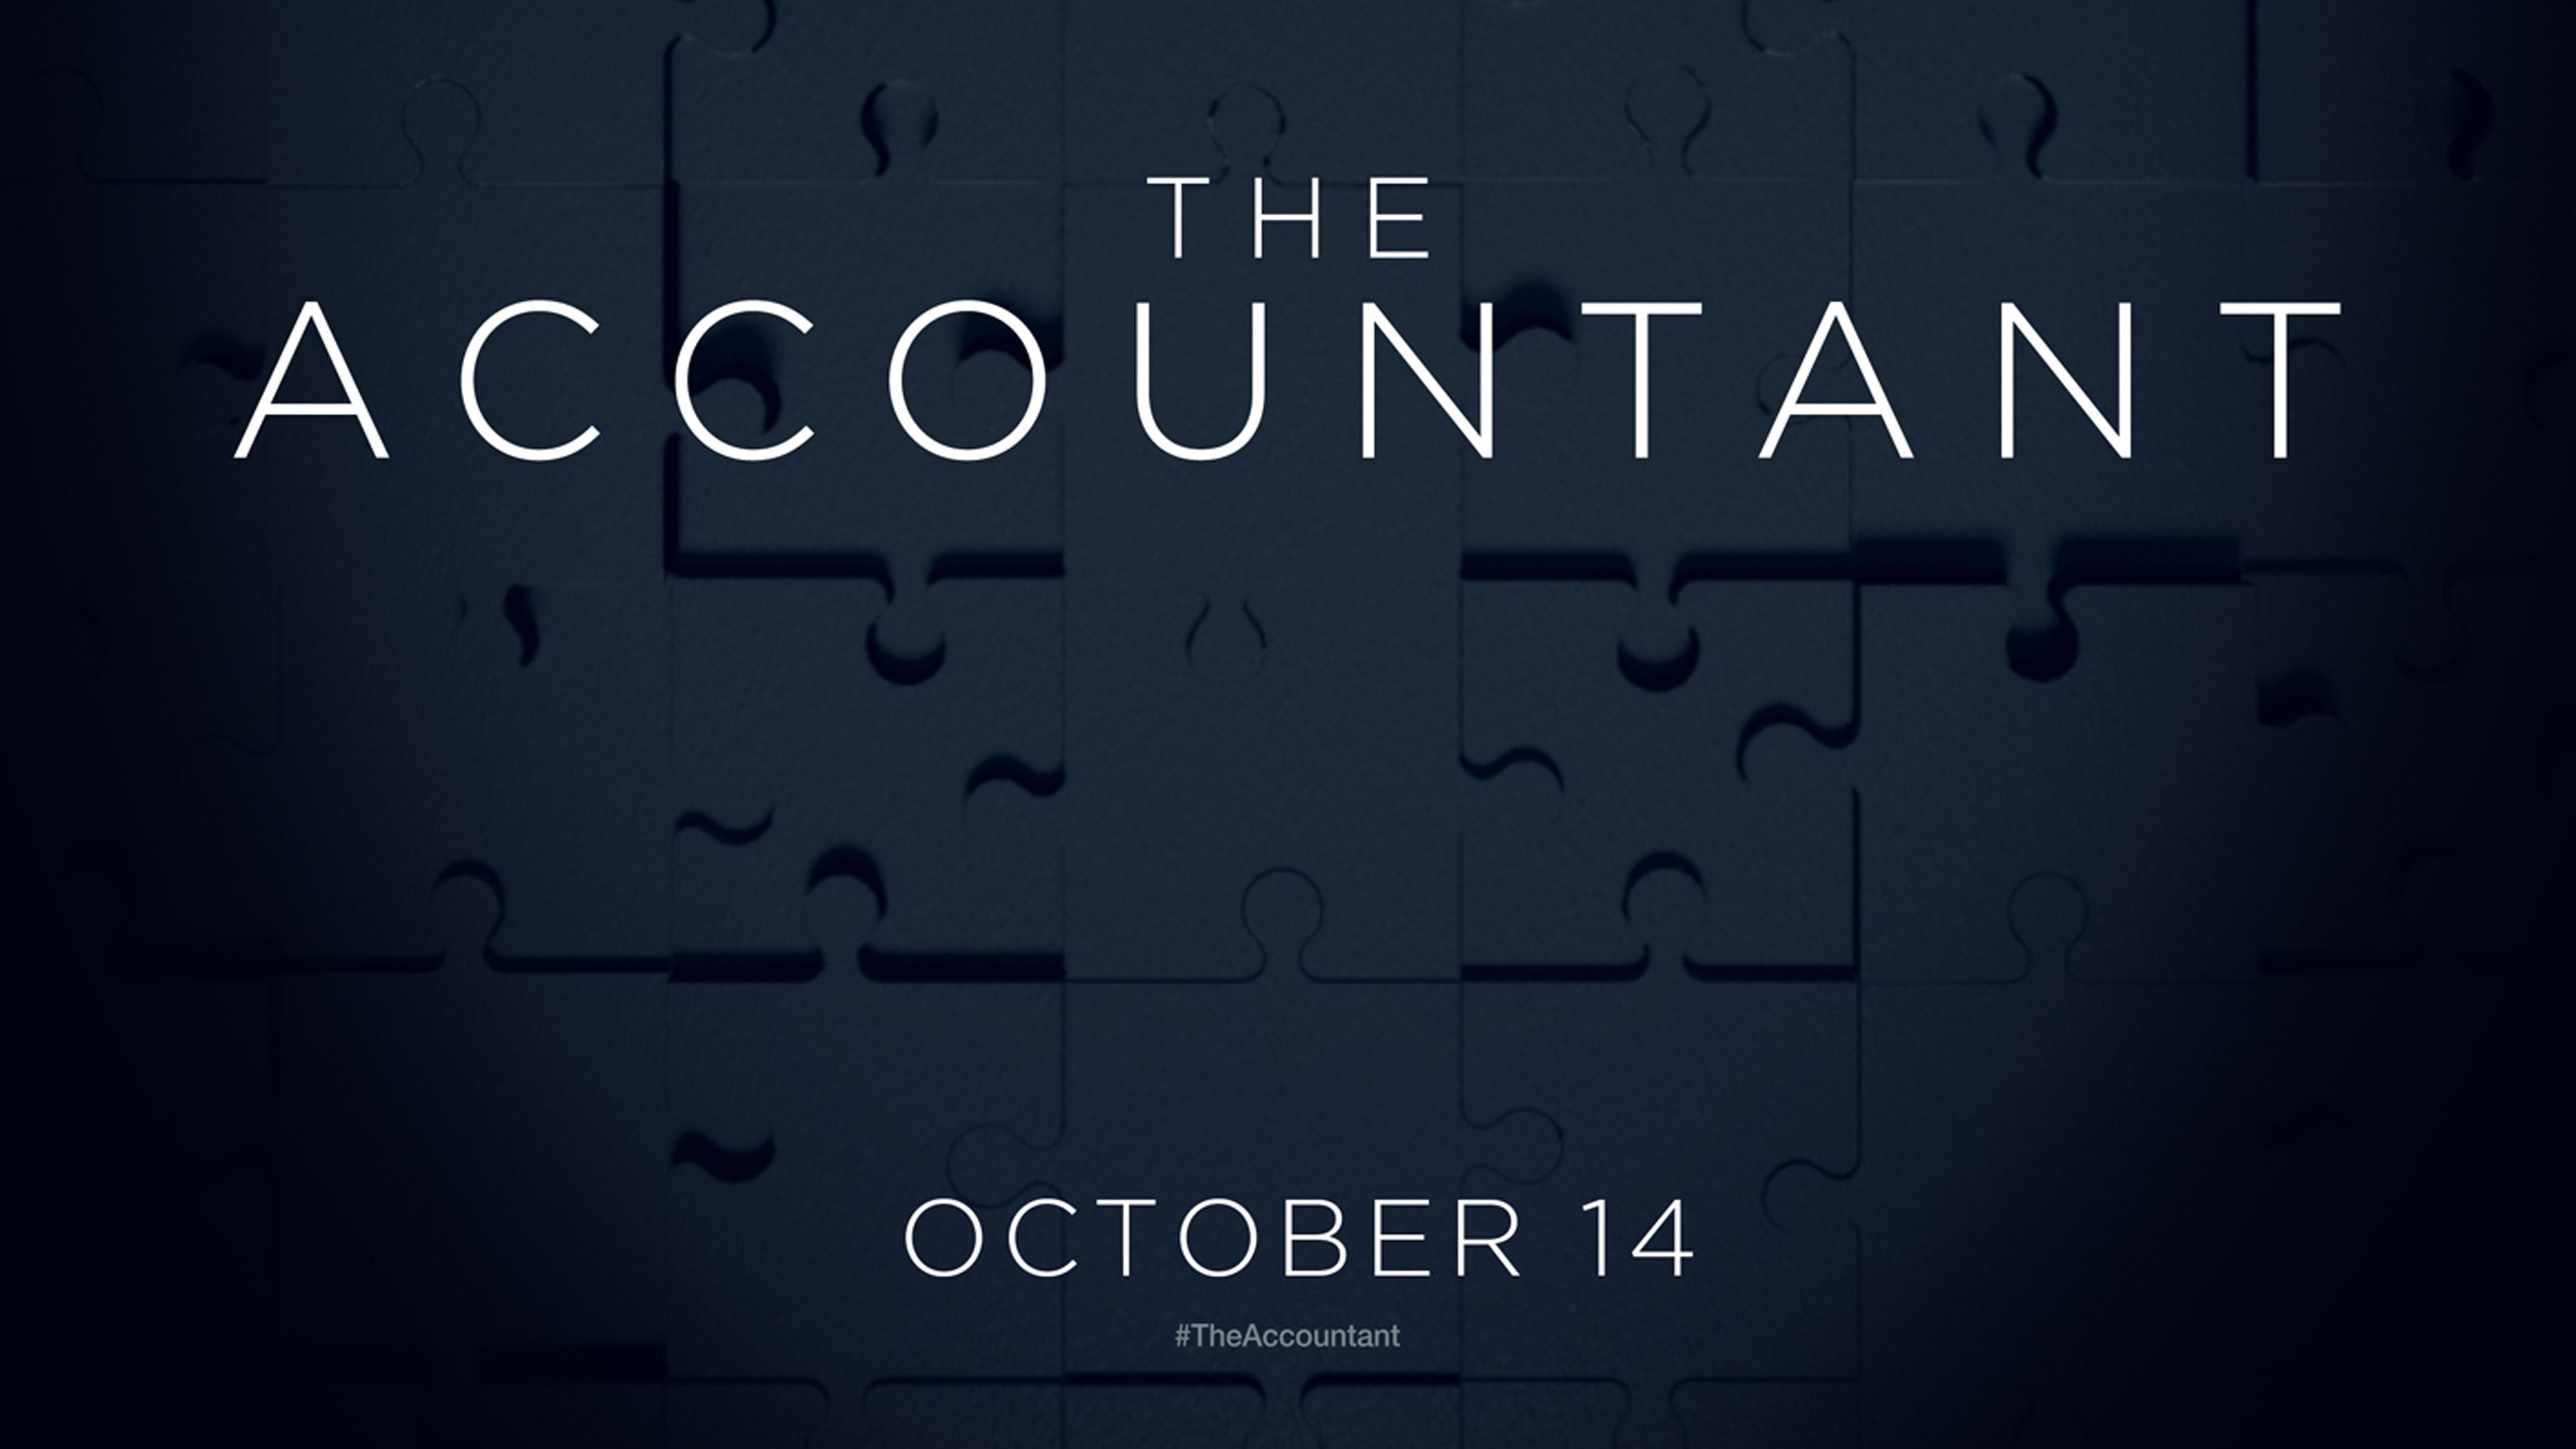 The Accountant widescreen wallpapers